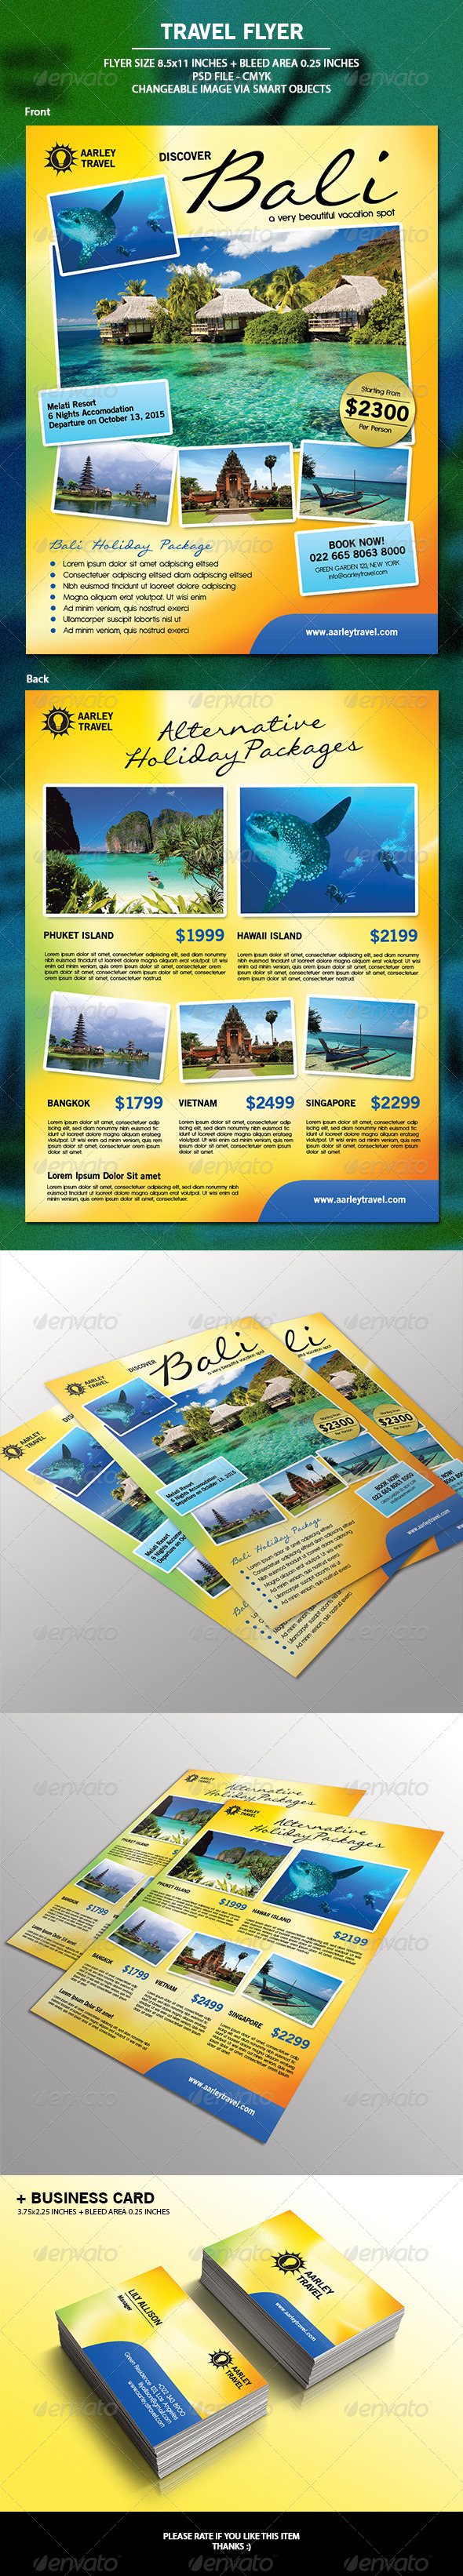 Travel Flyer + Business Card